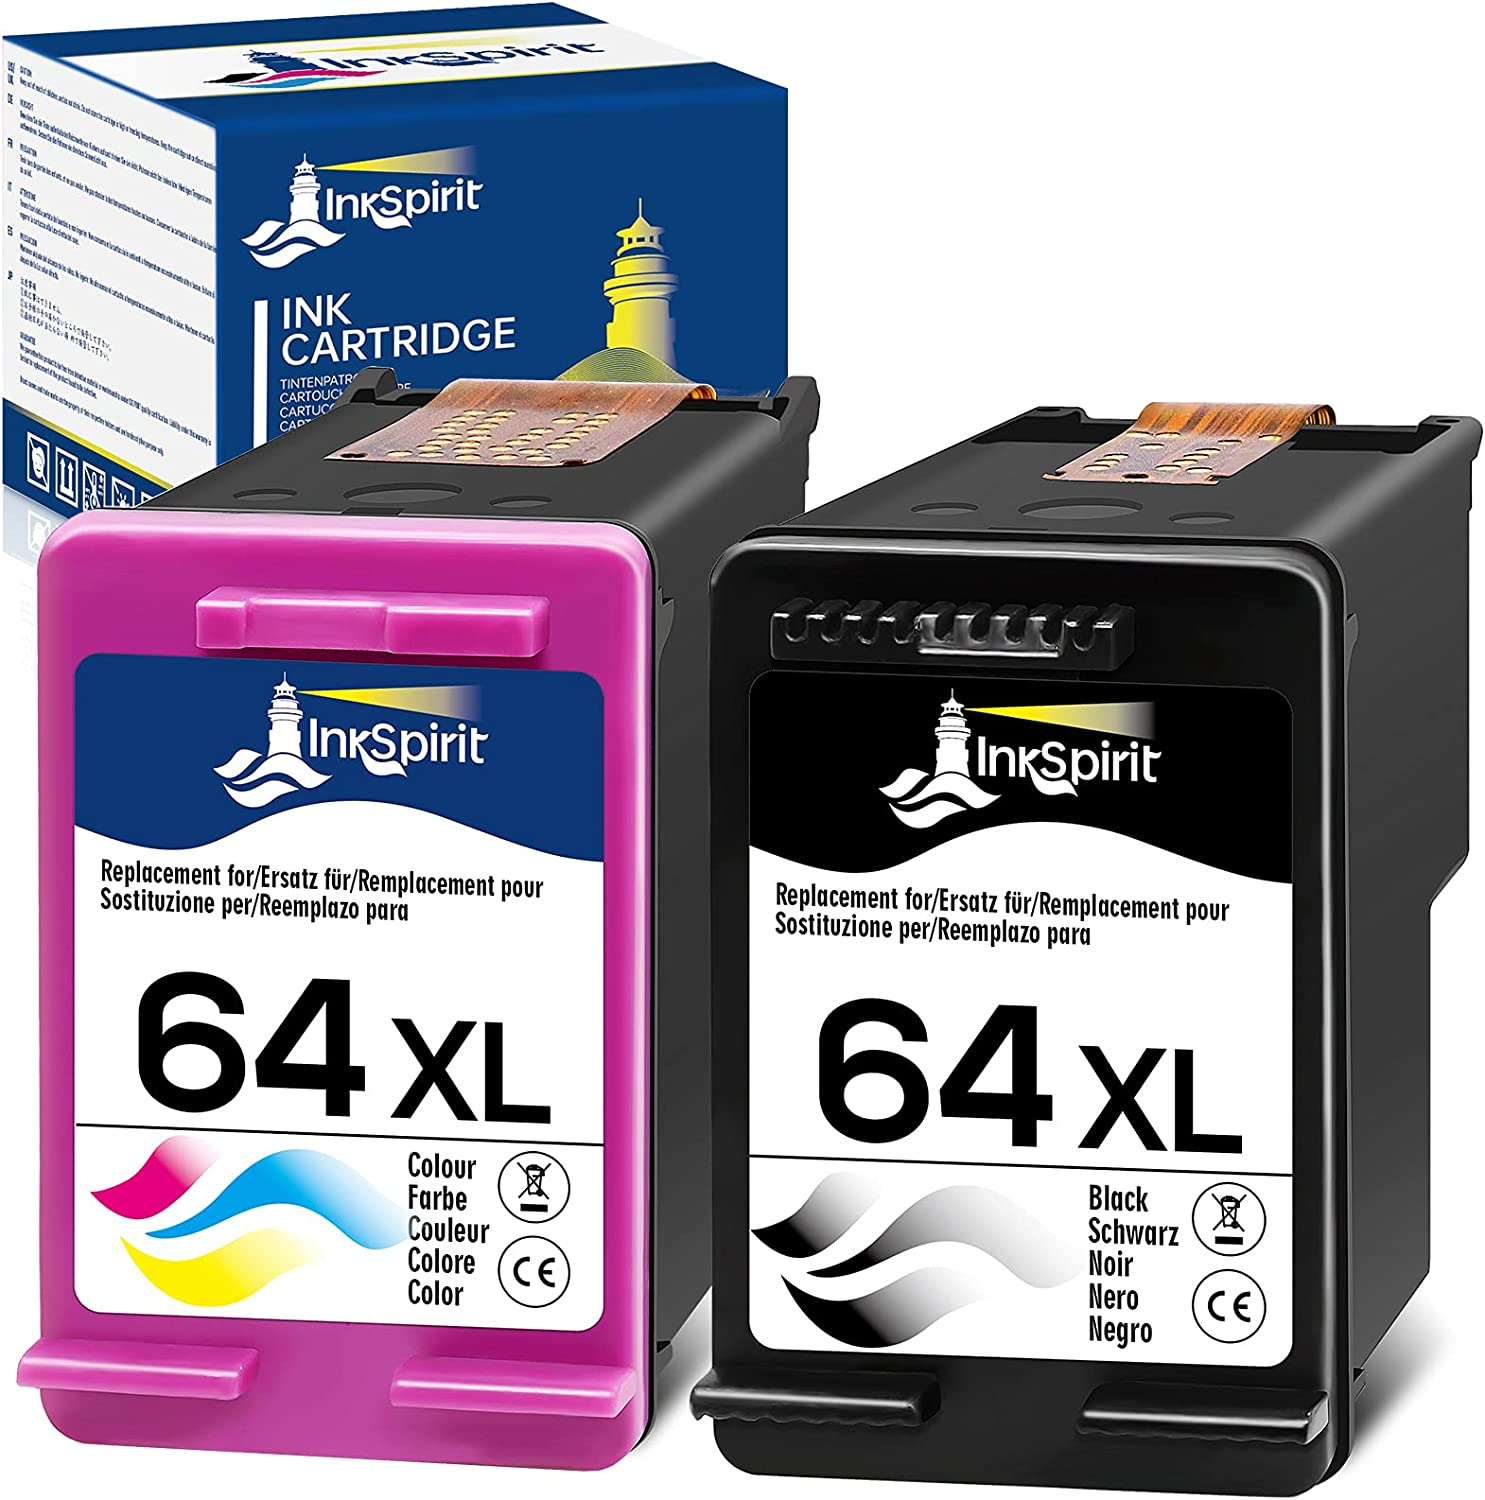 InkSpirit Remanufactured Ink Cartridge Replacement for HP 64 64XL 64 XL (1 Black + 1 Color Combo ) for Envy Photo 7855 6222 7800 7858 7155 6255 6252 7158 7164 7120 7130 Tango X Smart Home Wireless